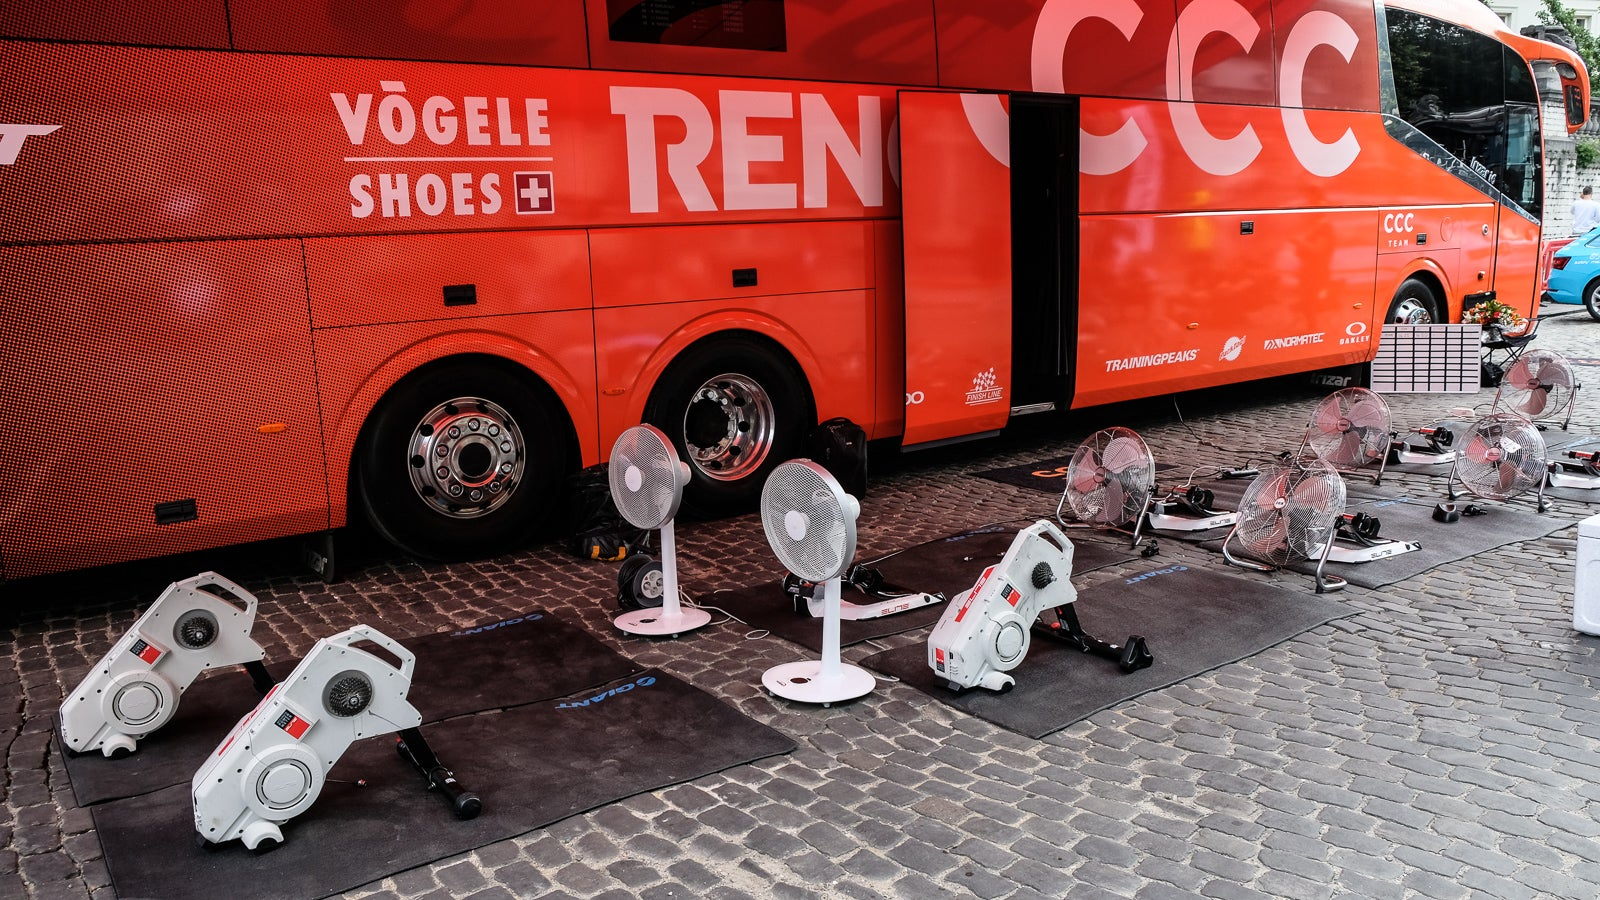 fans to move air while cyclists warm up